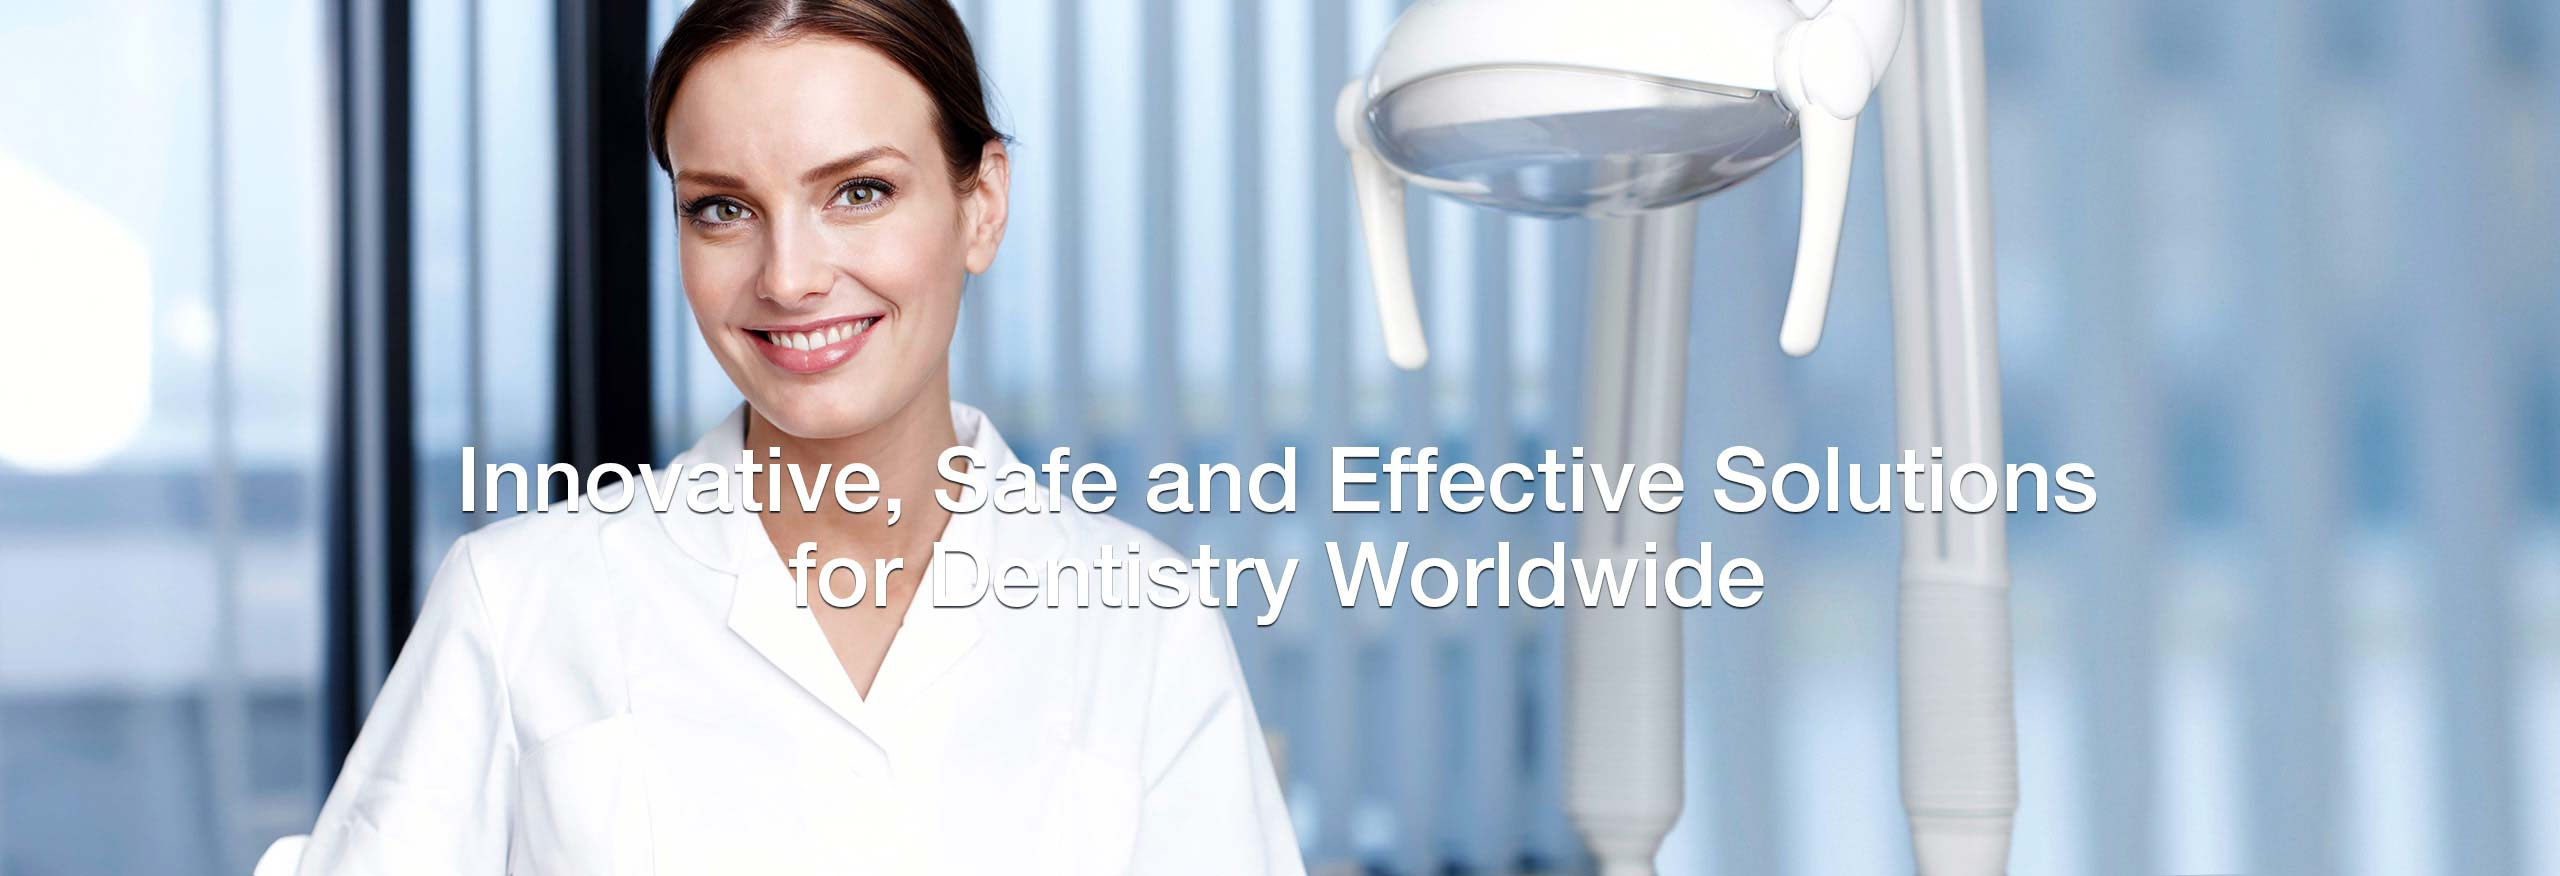 Innovative, Safe and Effective Solutions for Dentistry Worldwide